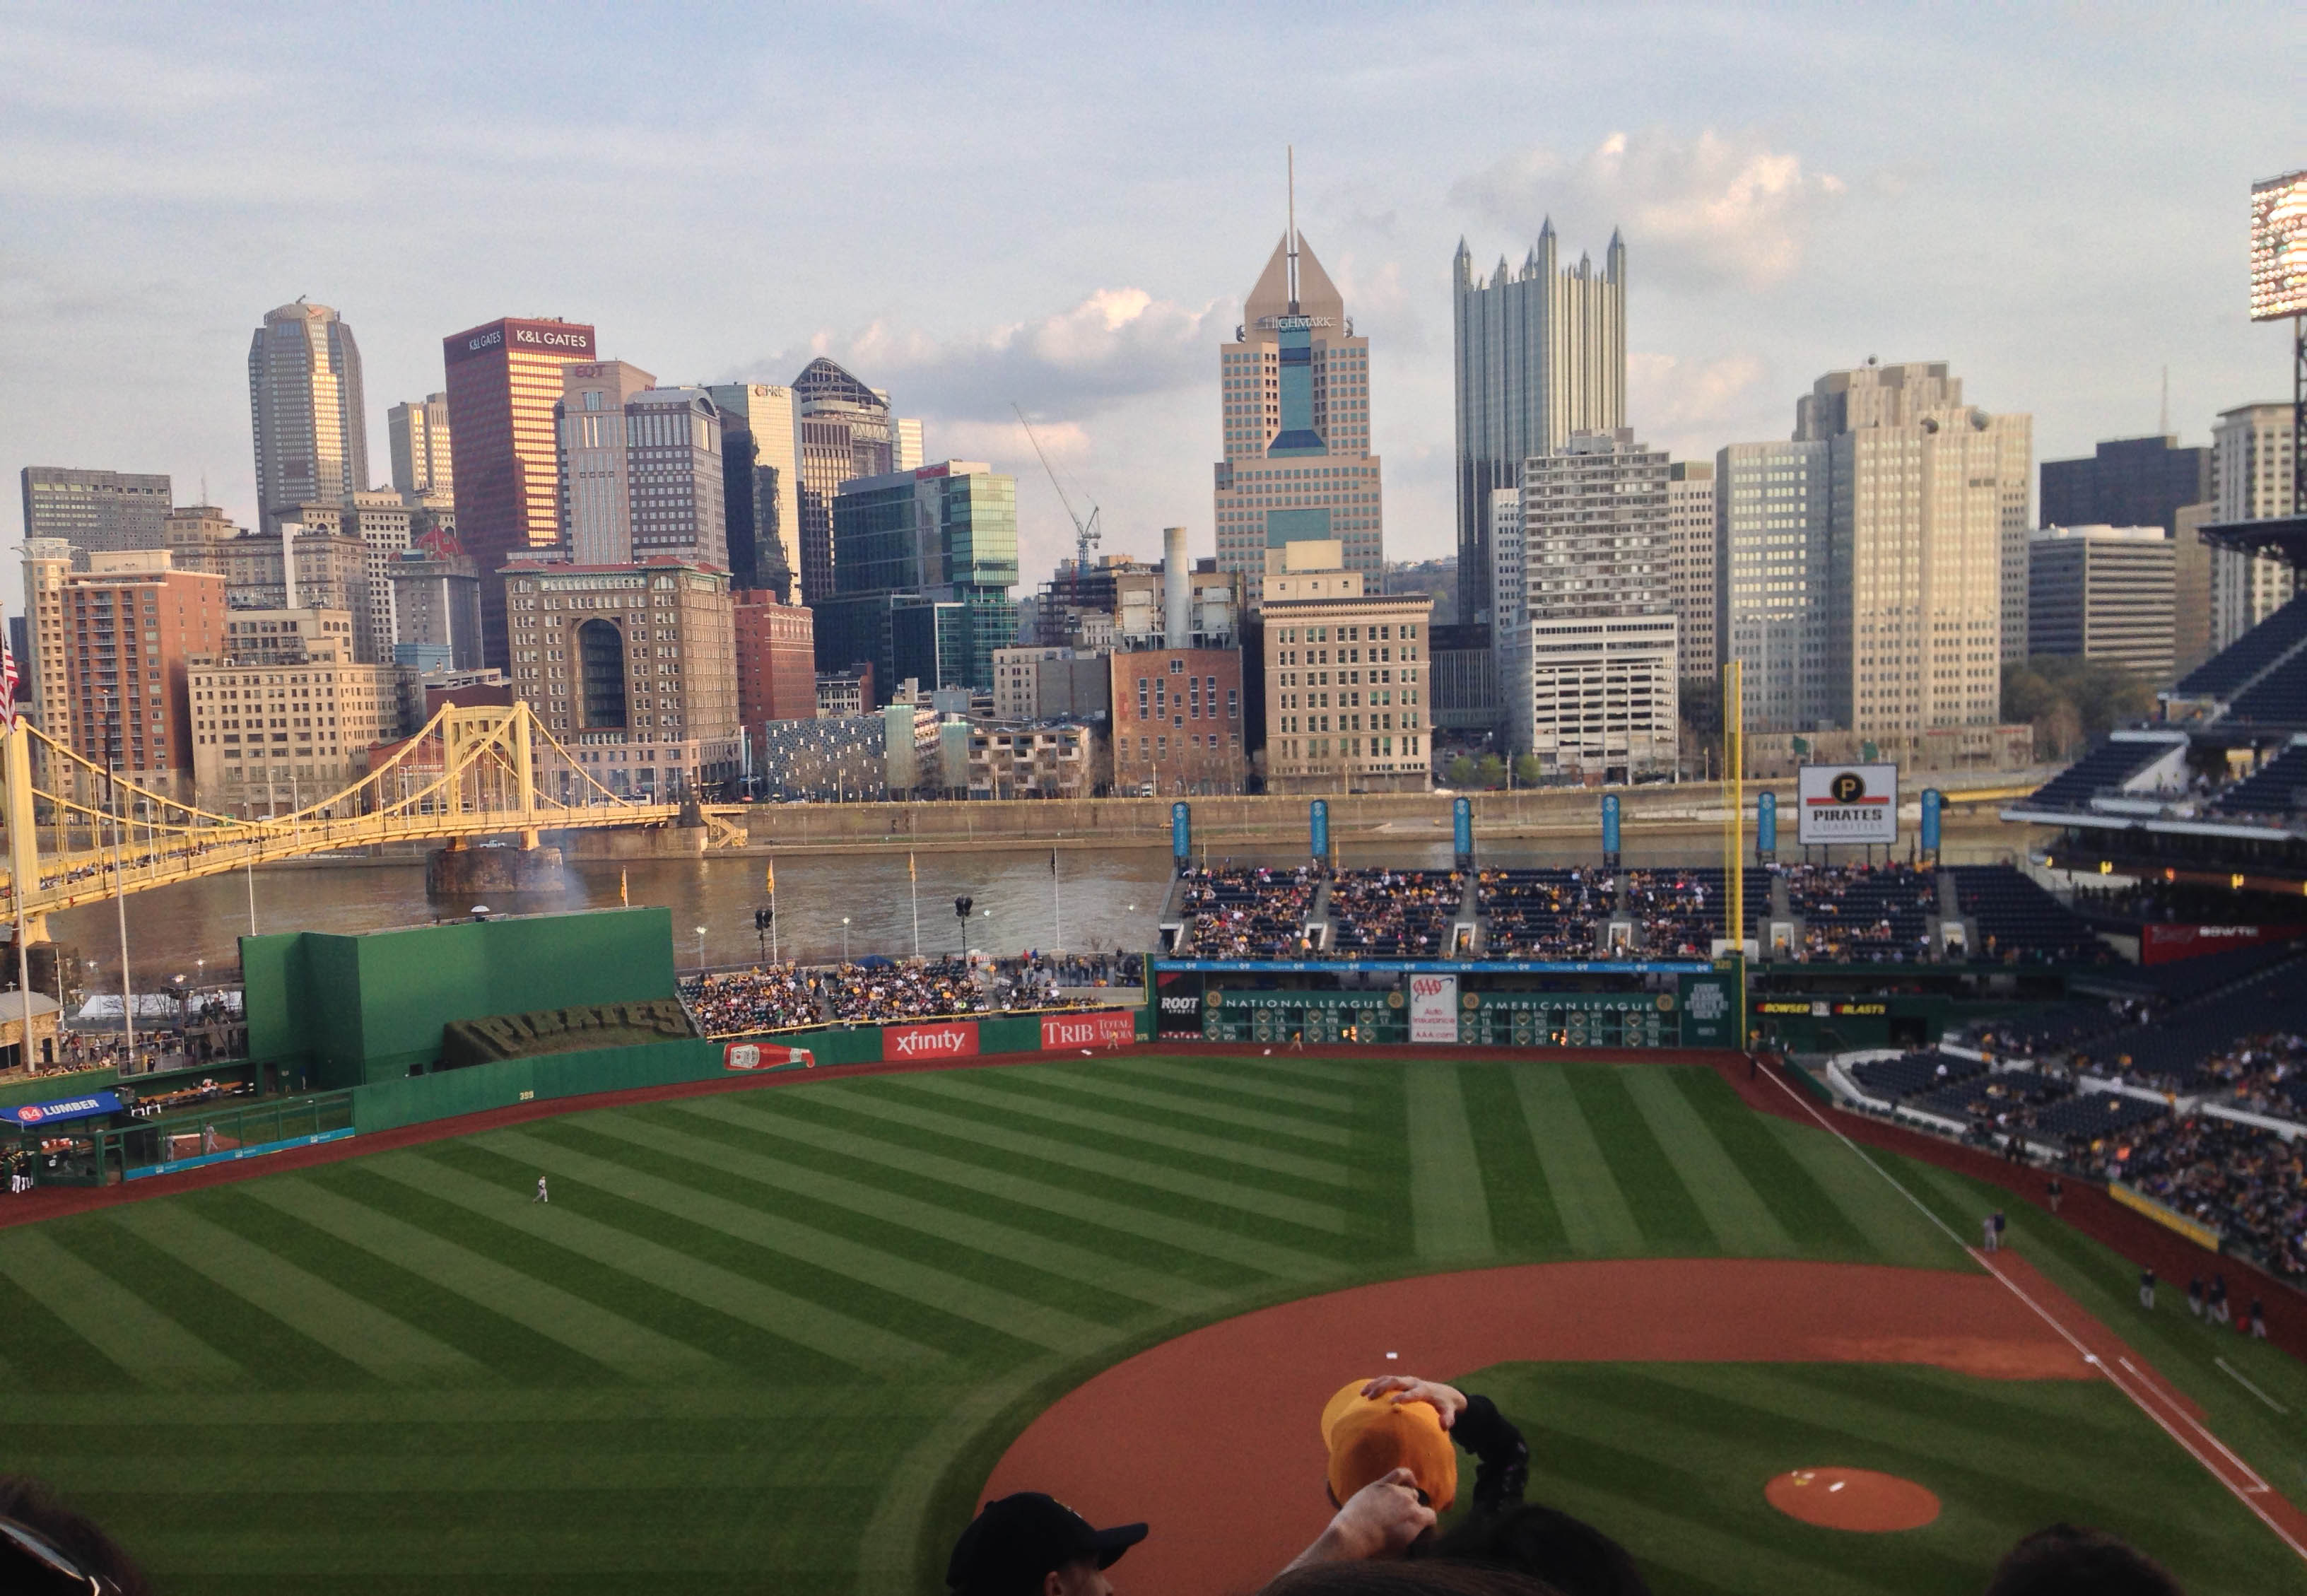 Pittsburgh skyline as seen from PNC Park